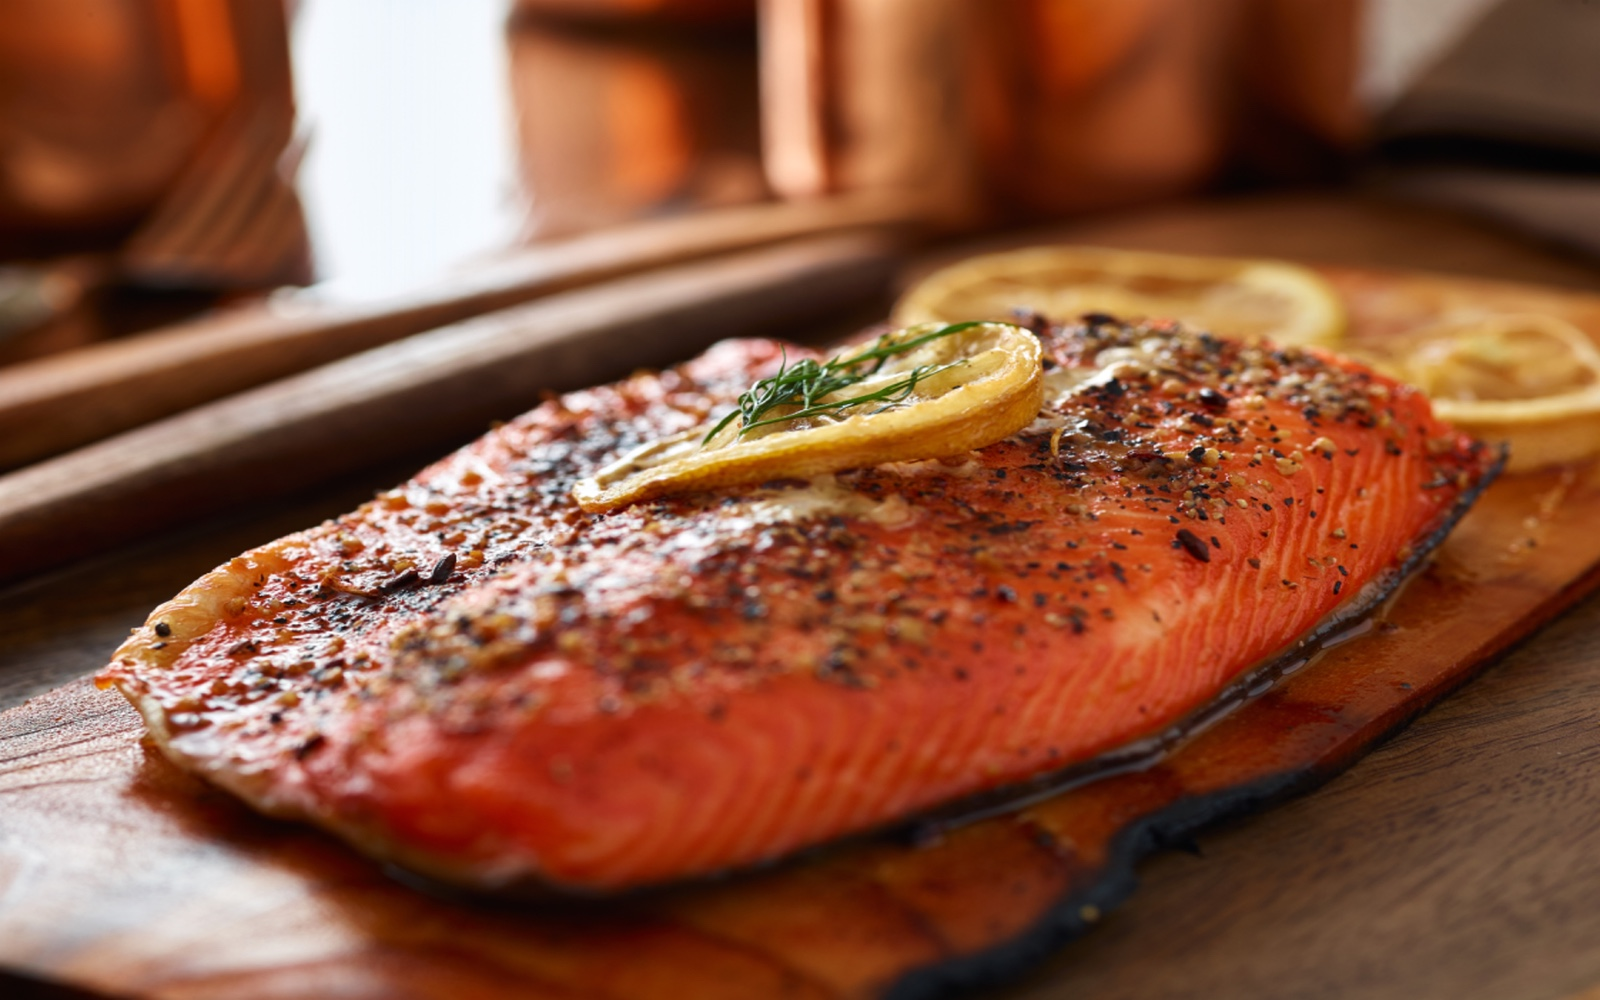 Sockeye salmon cooked on a cedar plank